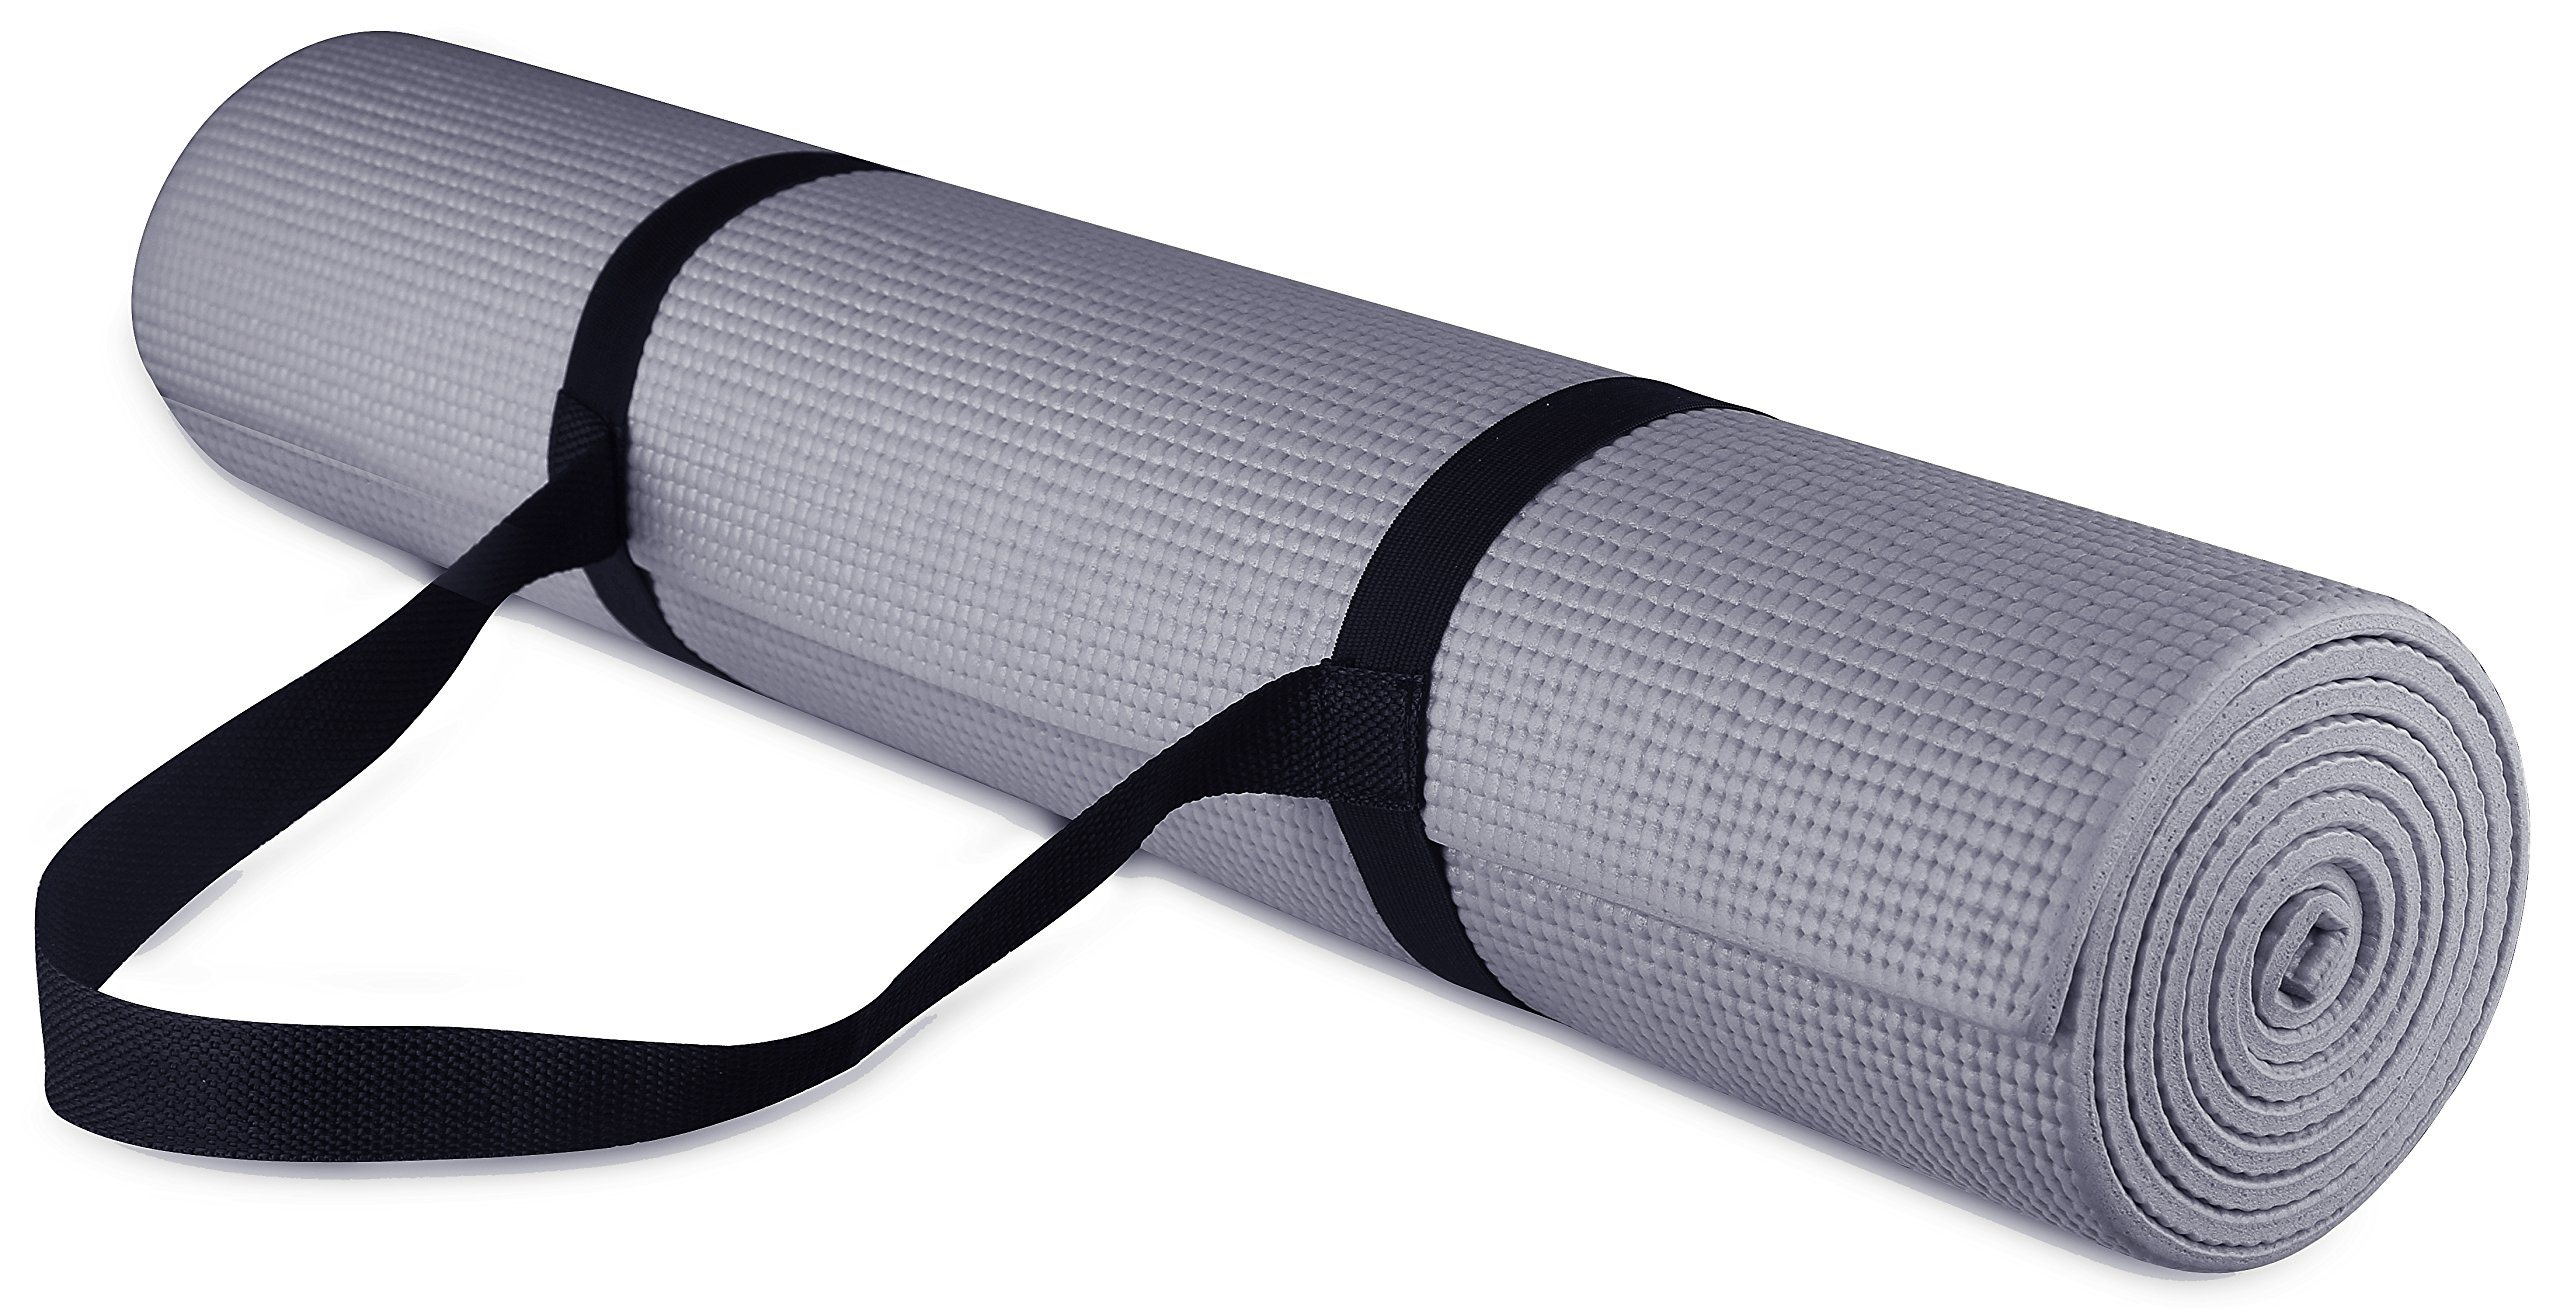 BalanceFrom GoYoga All Purpose High Density Non-Slip Exercise Yoga Mat with Carrying Strap, 1/4'', Grey